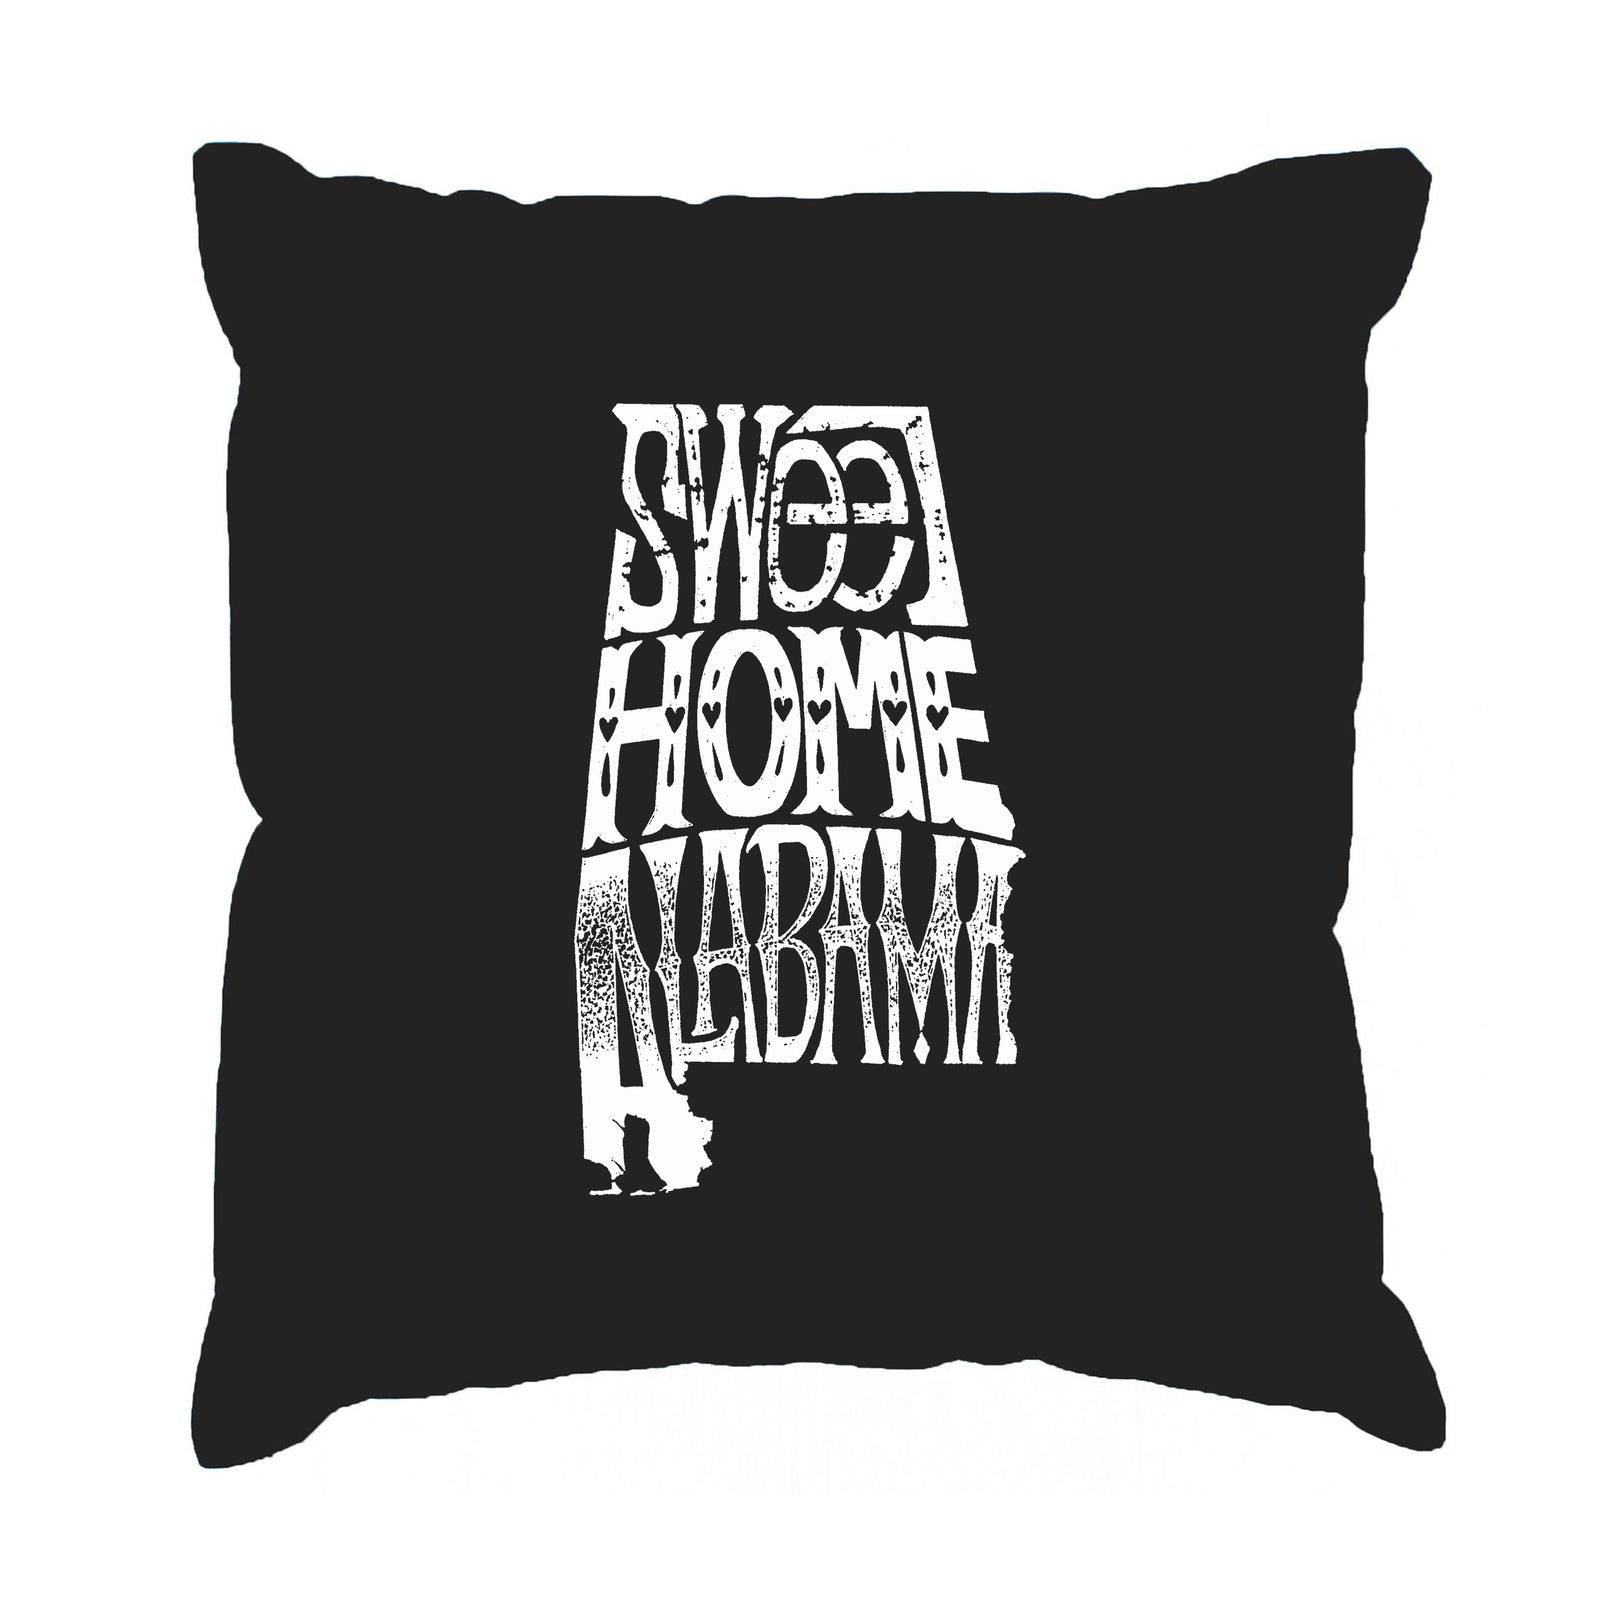 Throw Pillow Cover - Word Art - Sweet Home Alabama